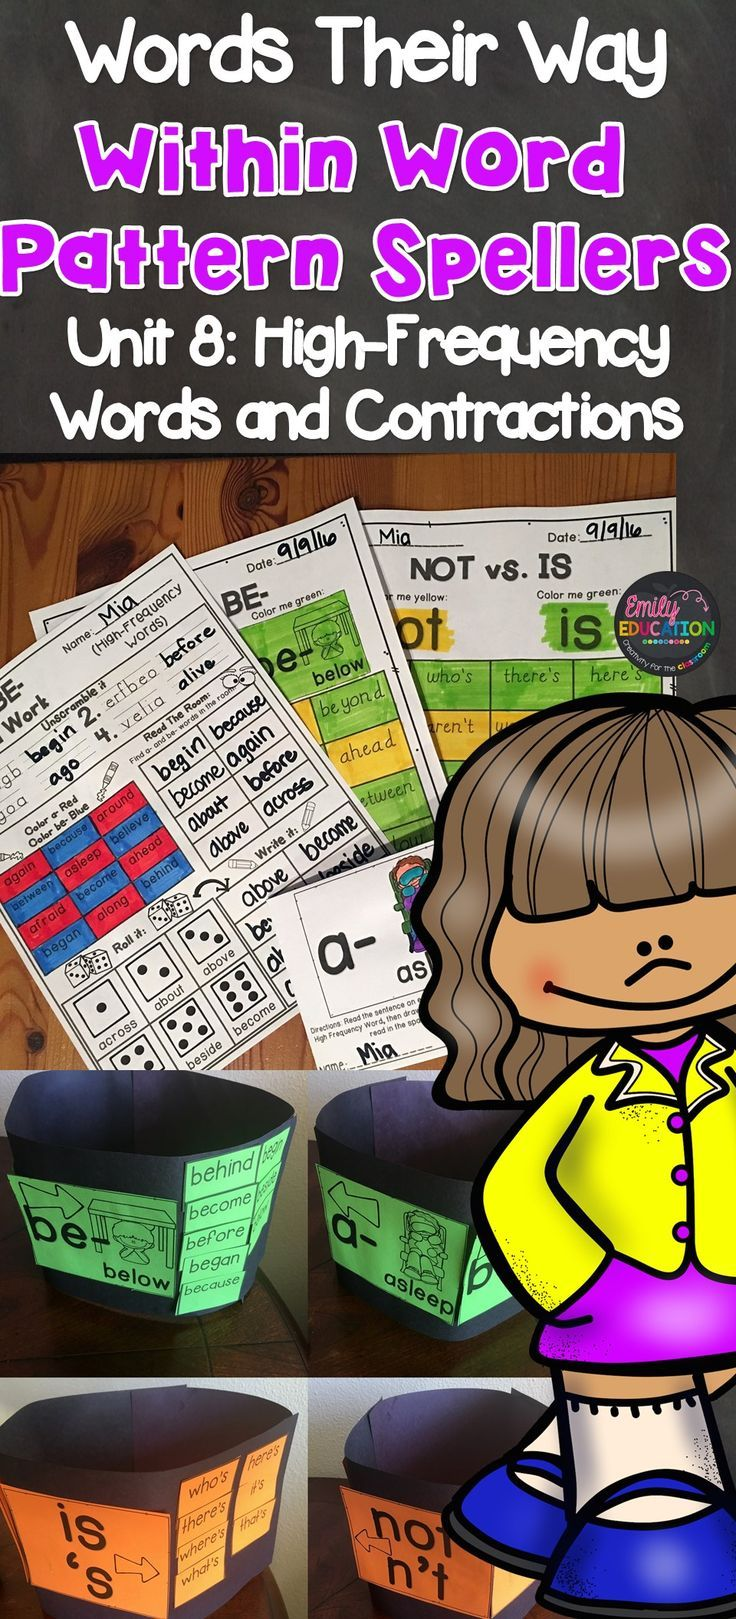 Words Their Way Within Word Pattern Spellers Unit 8 High Frequency Words and Contractions Activities